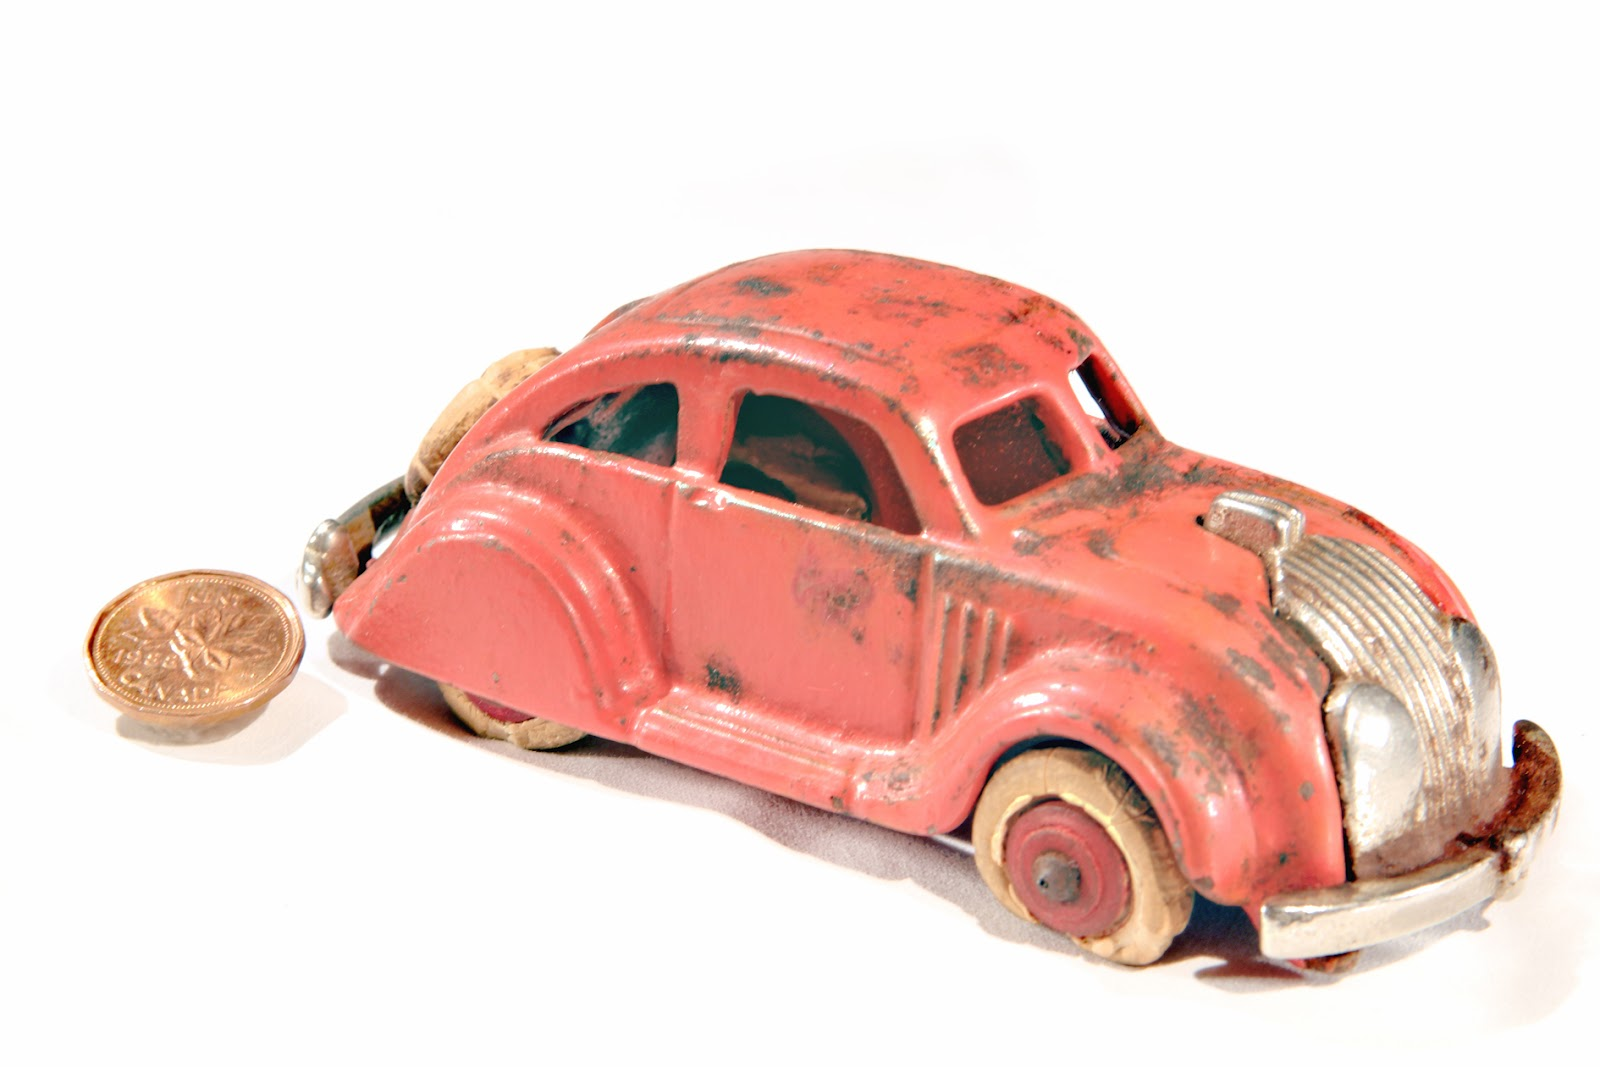 Do Old Toy Cars Have Lead Paint